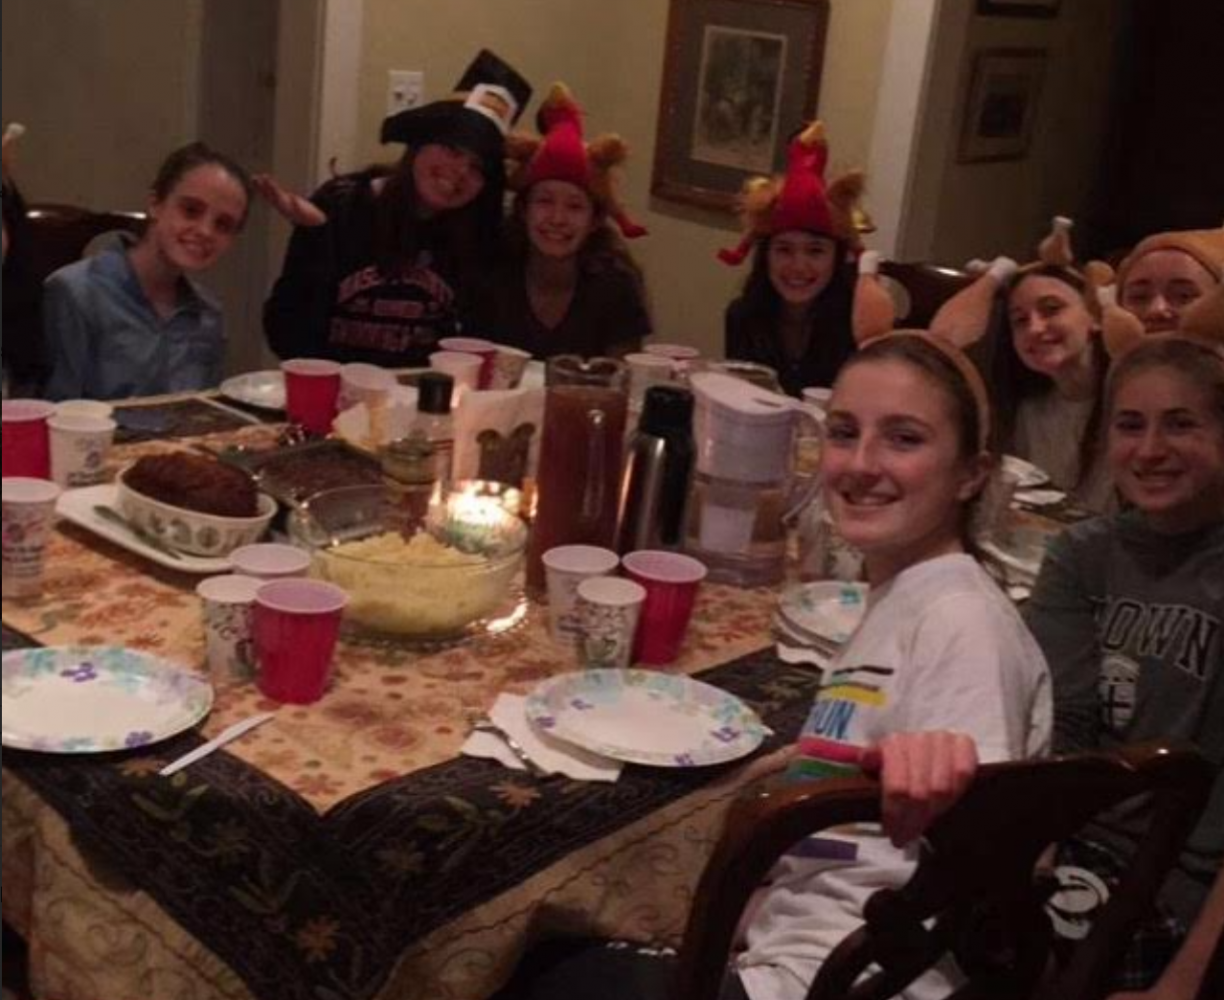 Last+year%2C+students+gathered+for+dinner+to+celebrate+Friendsgiving+on+their+own.+The+evening+included+delicious+traditional+Thanksgiving+meals+and+sweet+treats+including+a+s%27mores+dish.